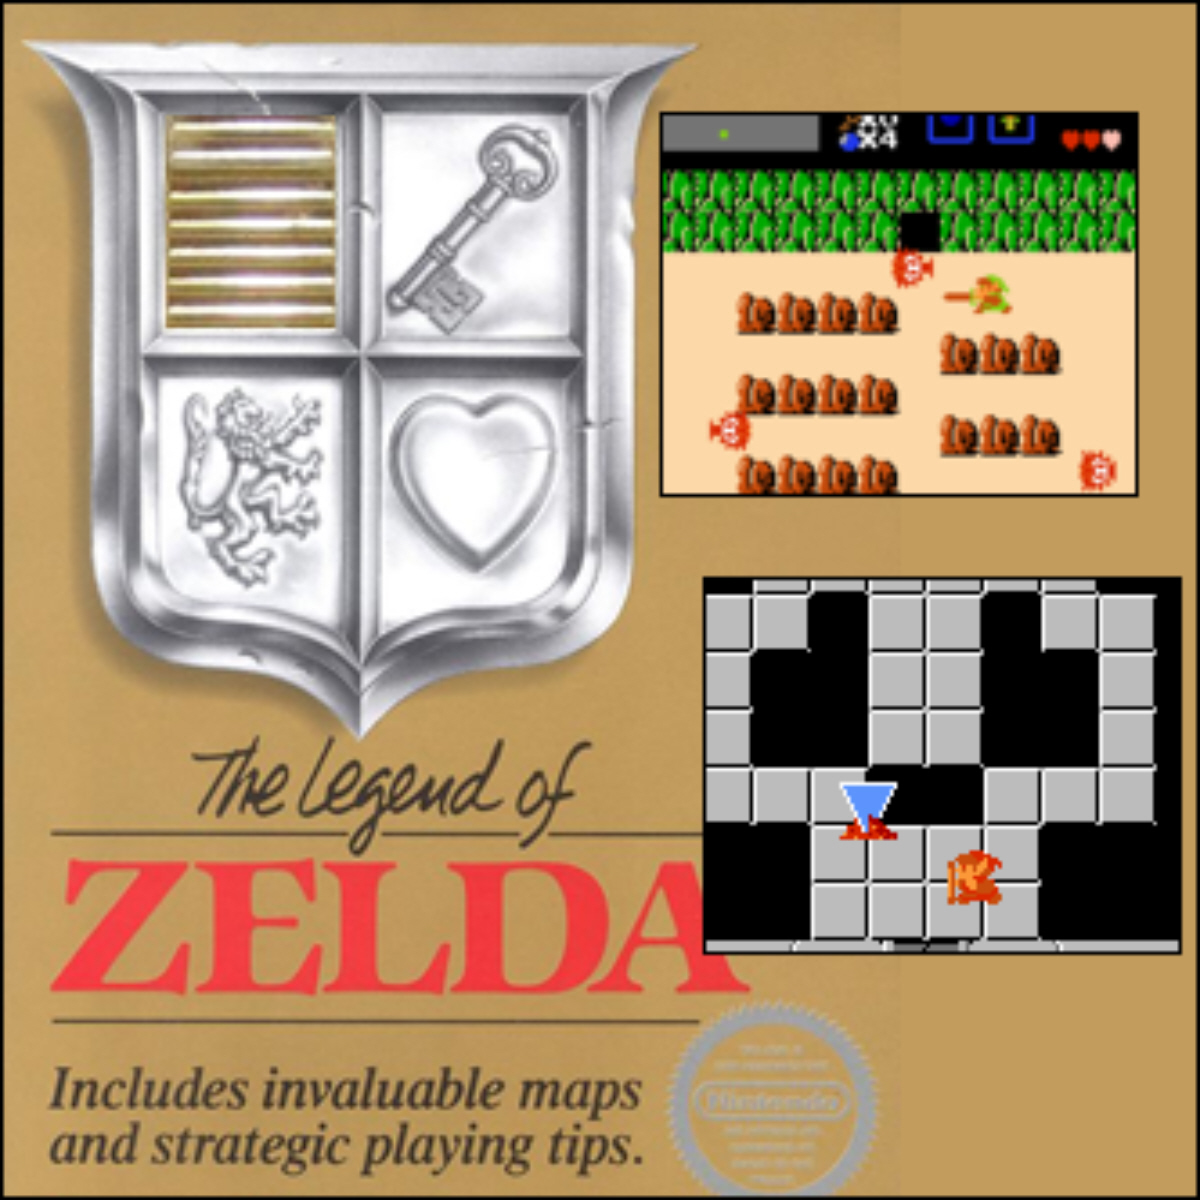 nes-zelda-cover-art-and-screenshots-banner